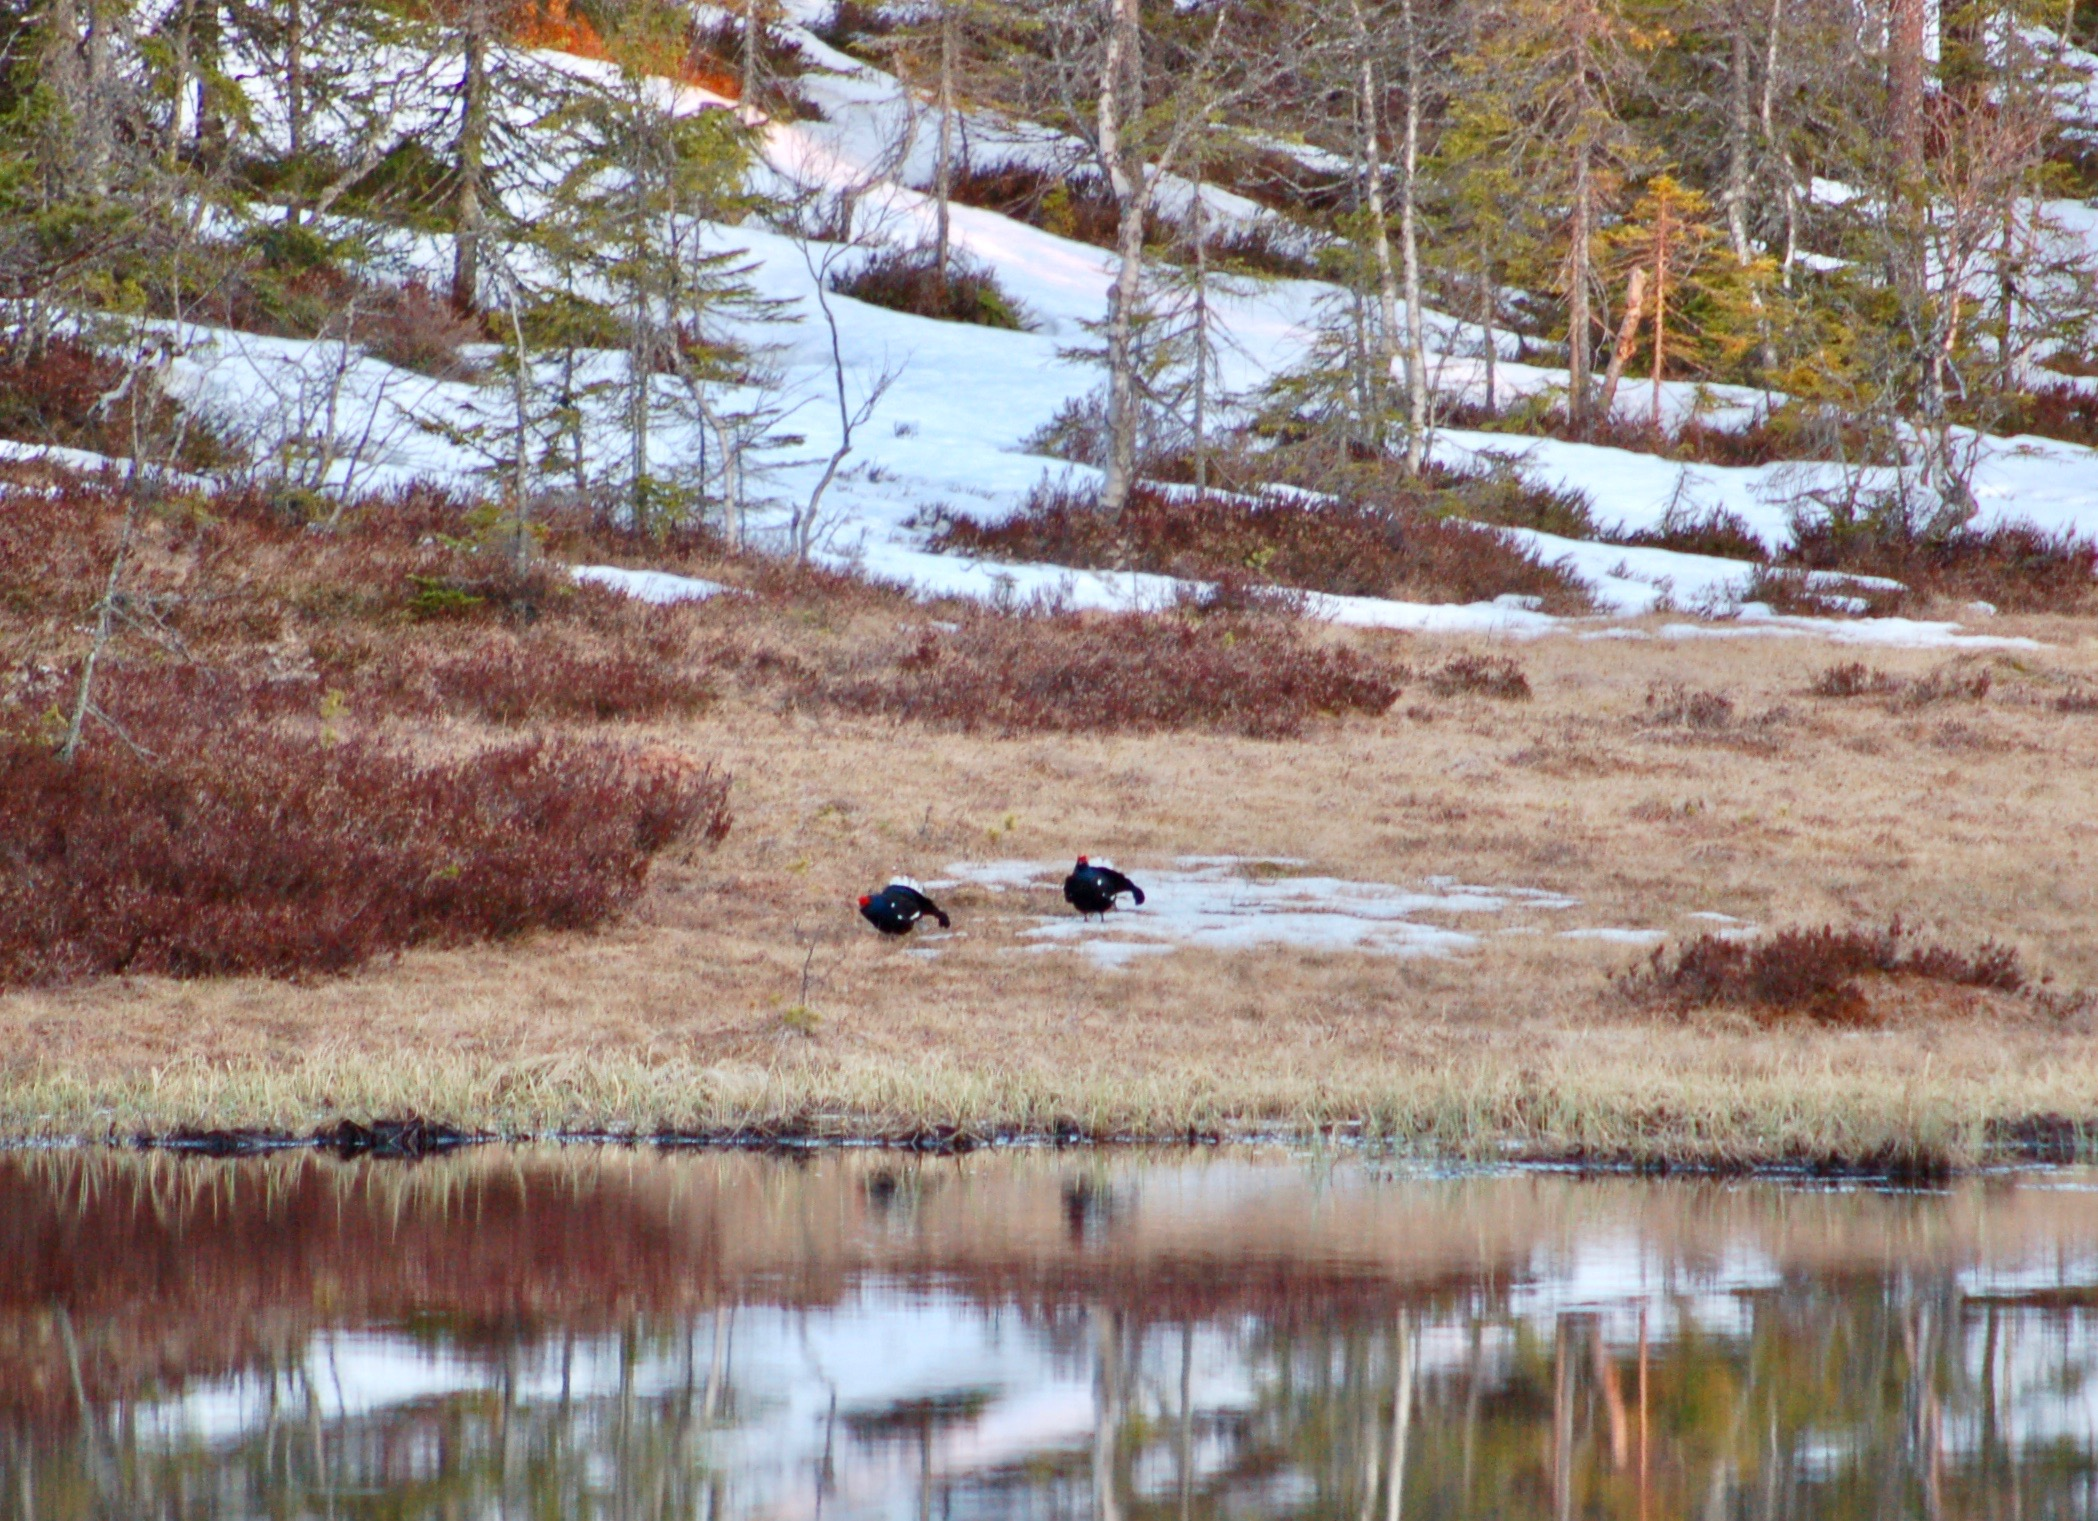 Black Grouse arriving at the scene (Photo: Oslo Outdoor)